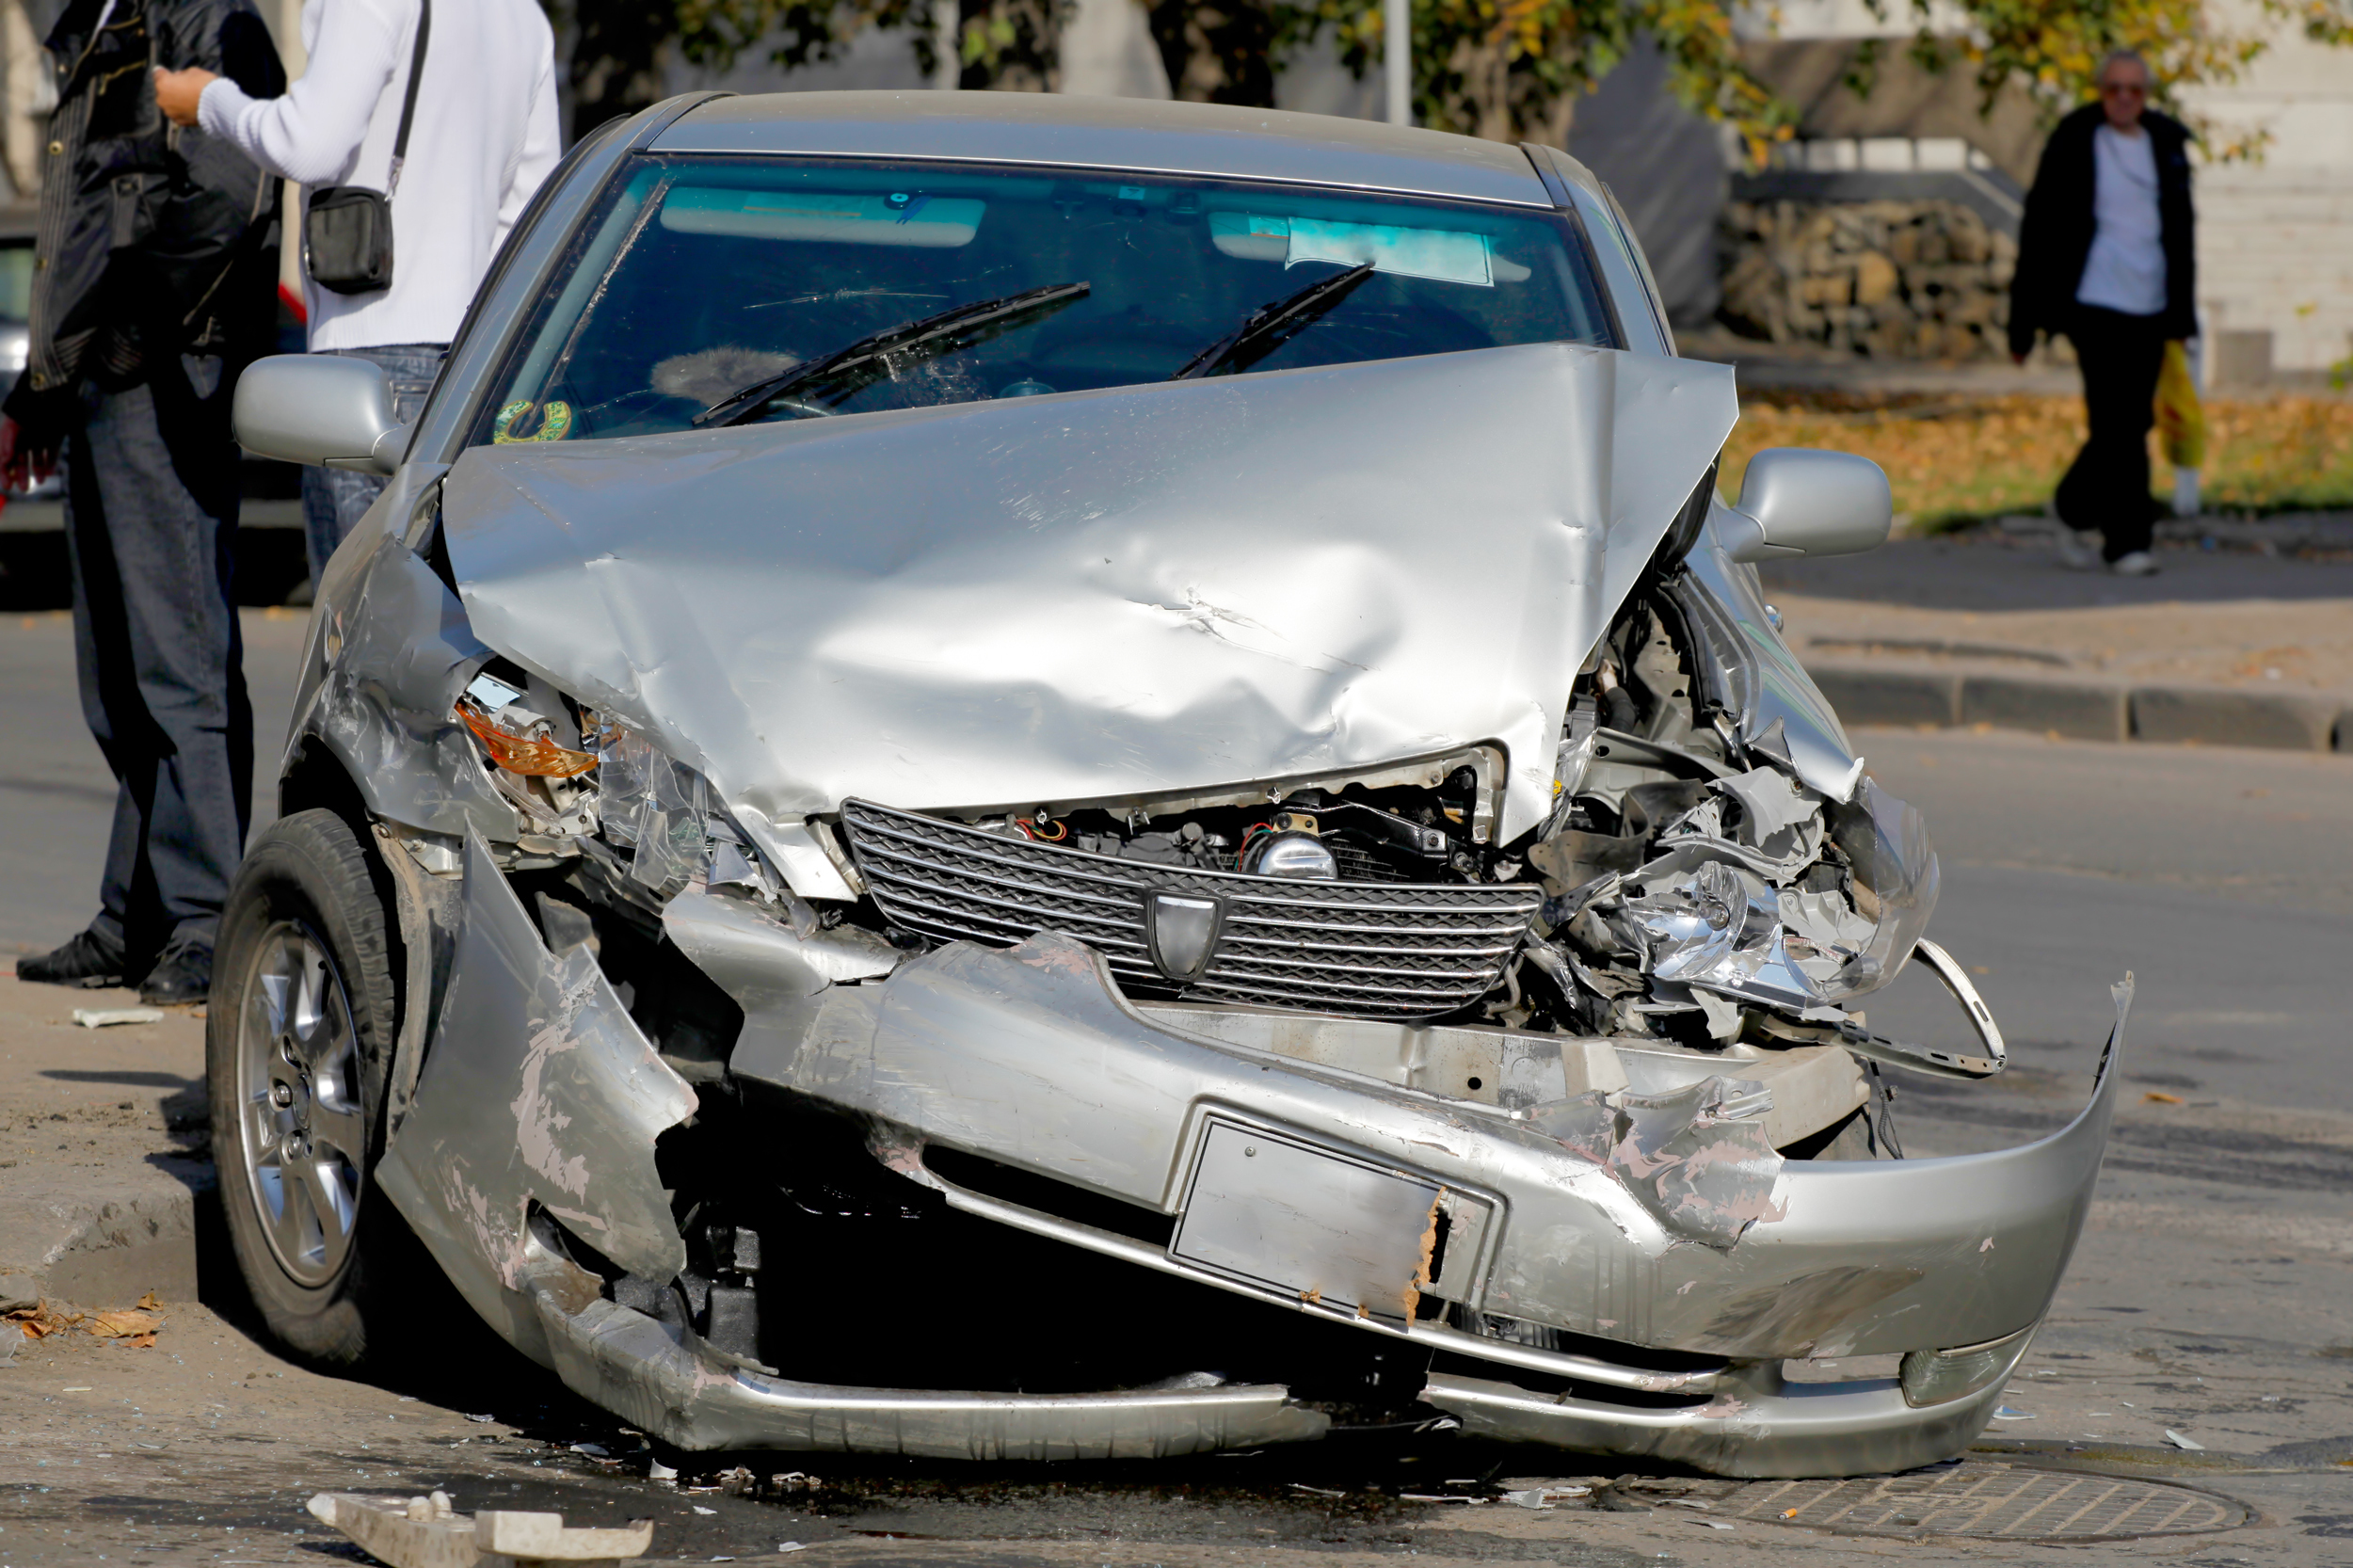 U.S. Lags Behind Rest of World in Reducing Highway Deaths